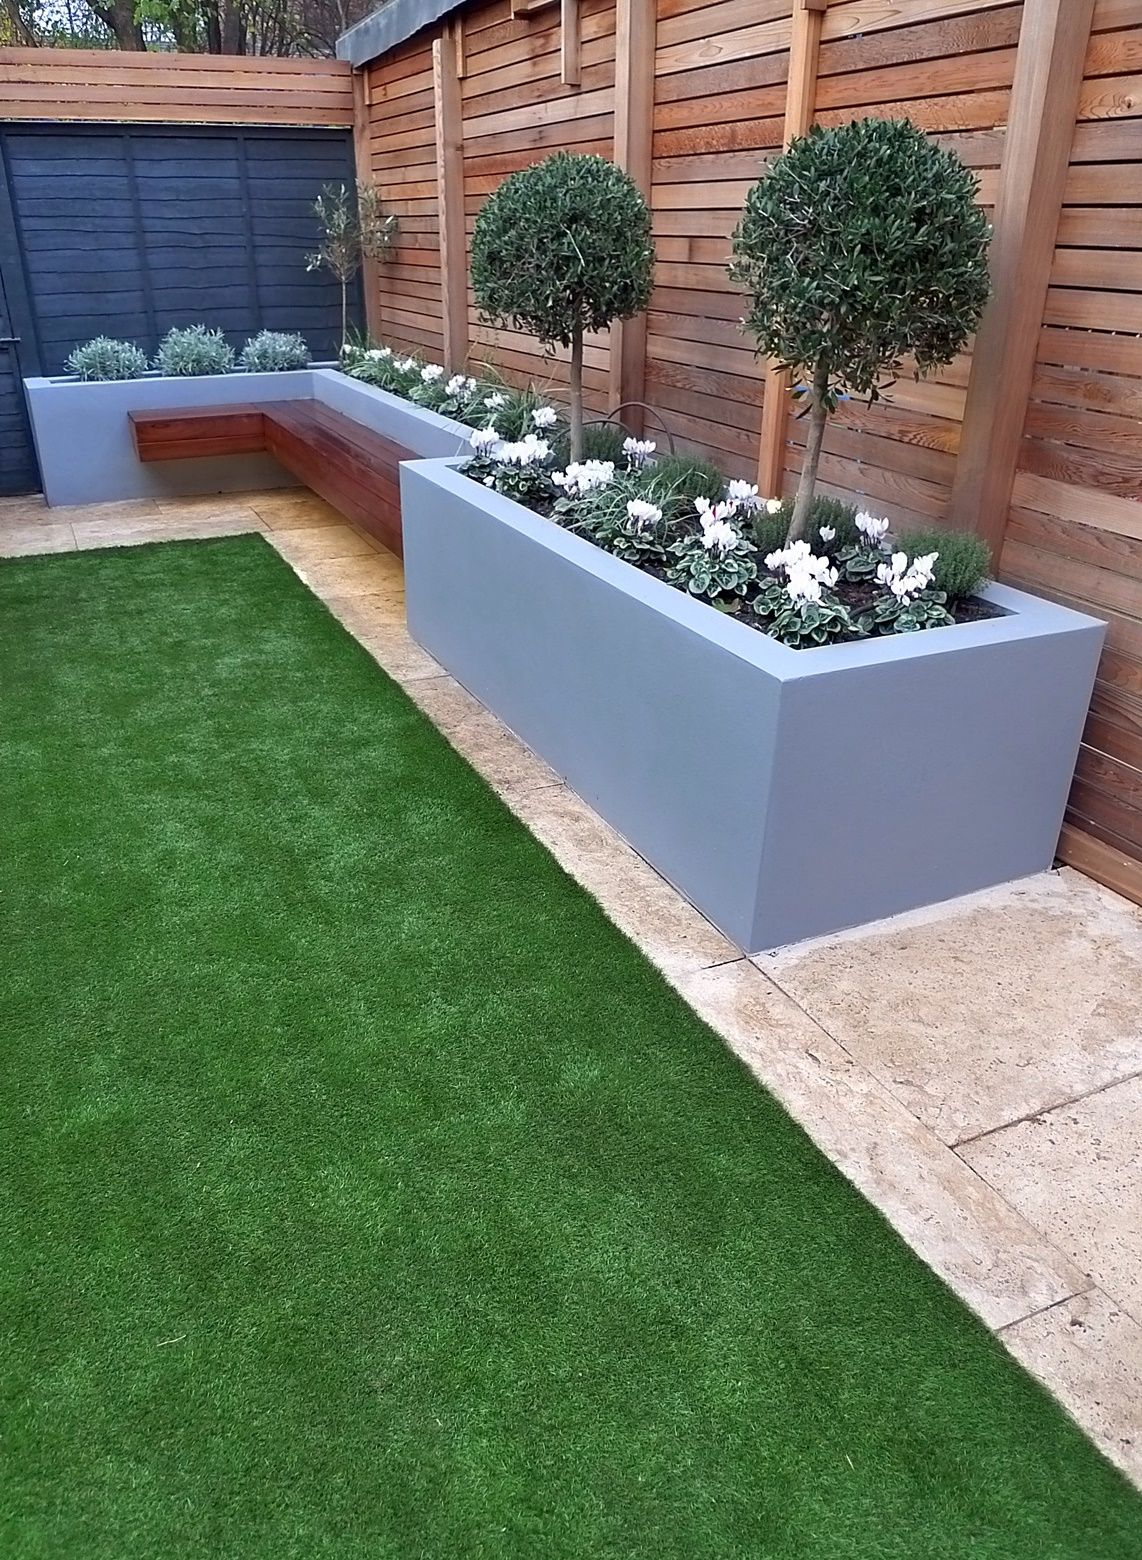 High Quality Modern Garden Design Company London Chelsea Fulham Clapham